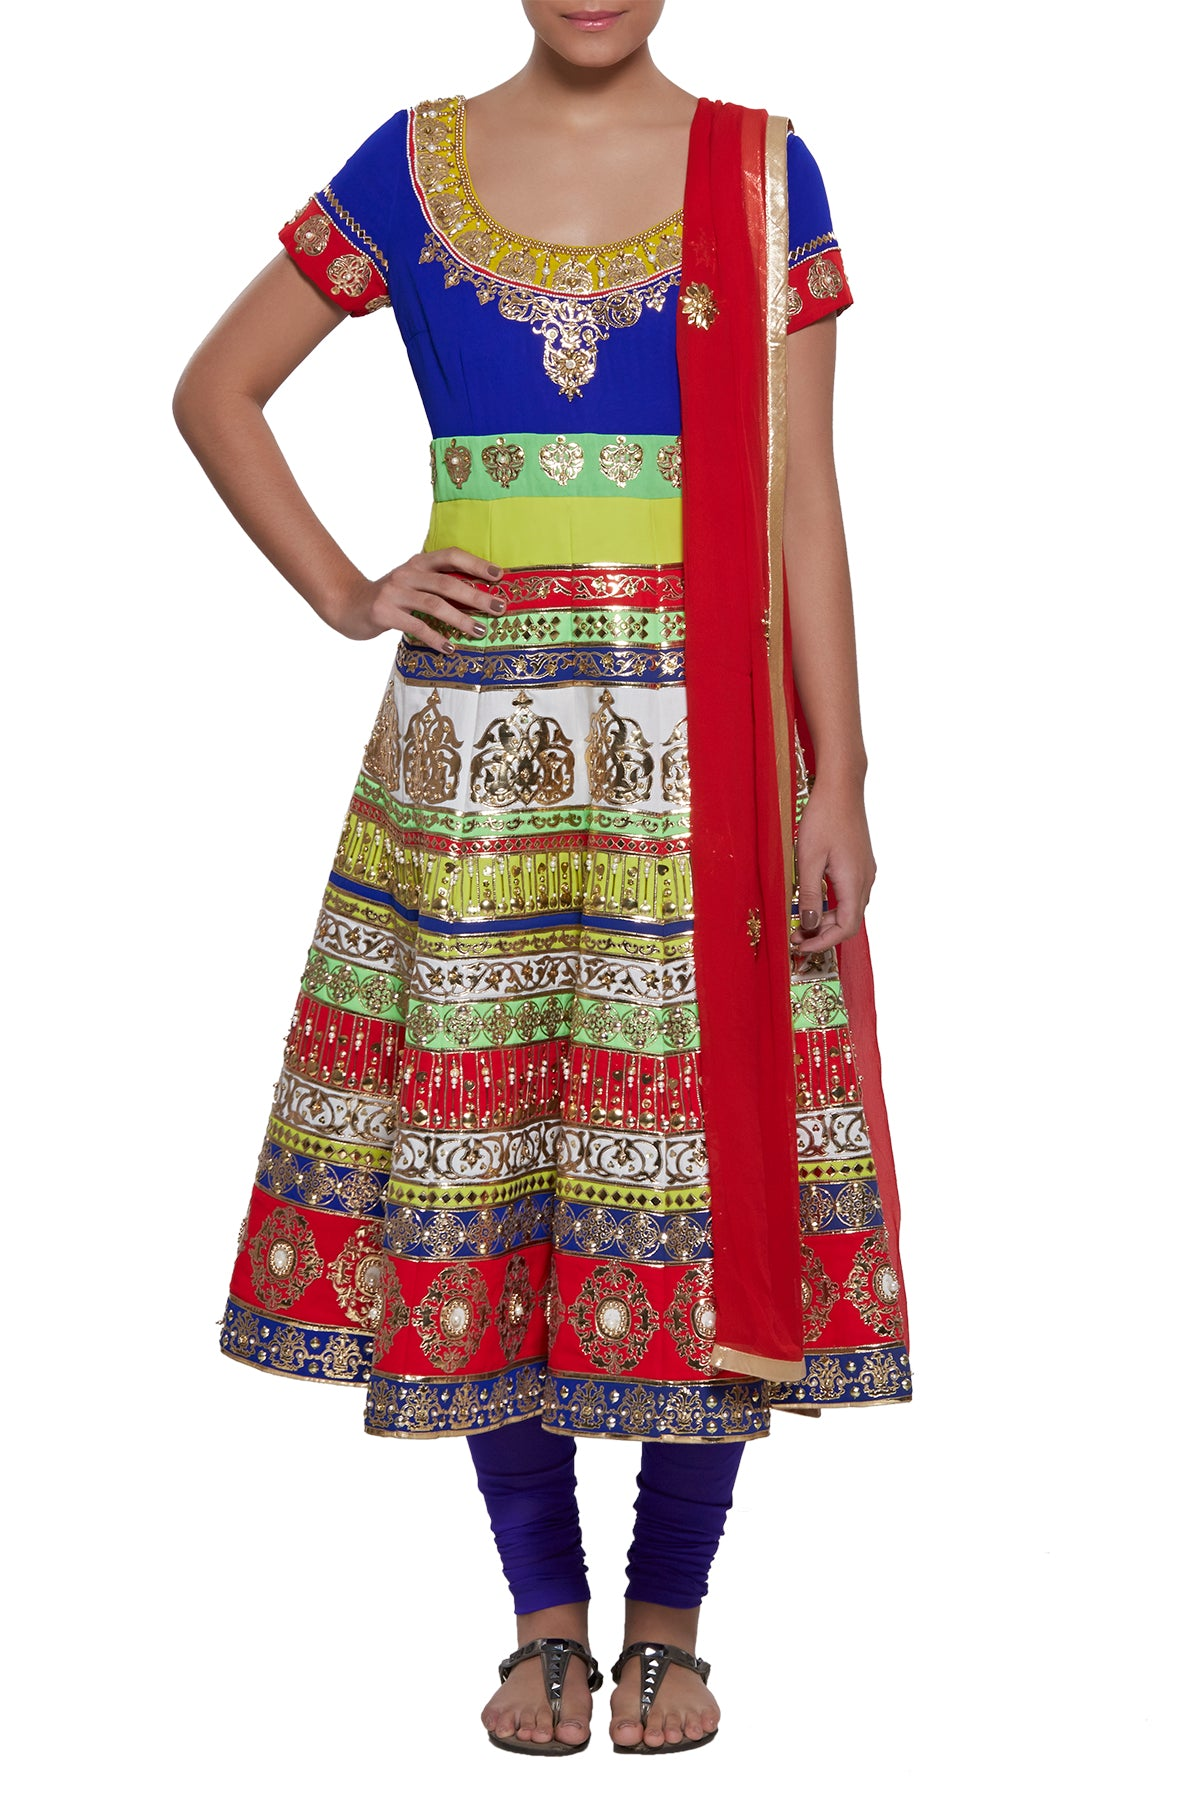 Embrace a riot of colour to reflect our rich traditions in this sensational tiered anarkali by the genius himself - Manish Arora. Garnished with gold appliqué and bead work all across, this one will light up every room you walk into.